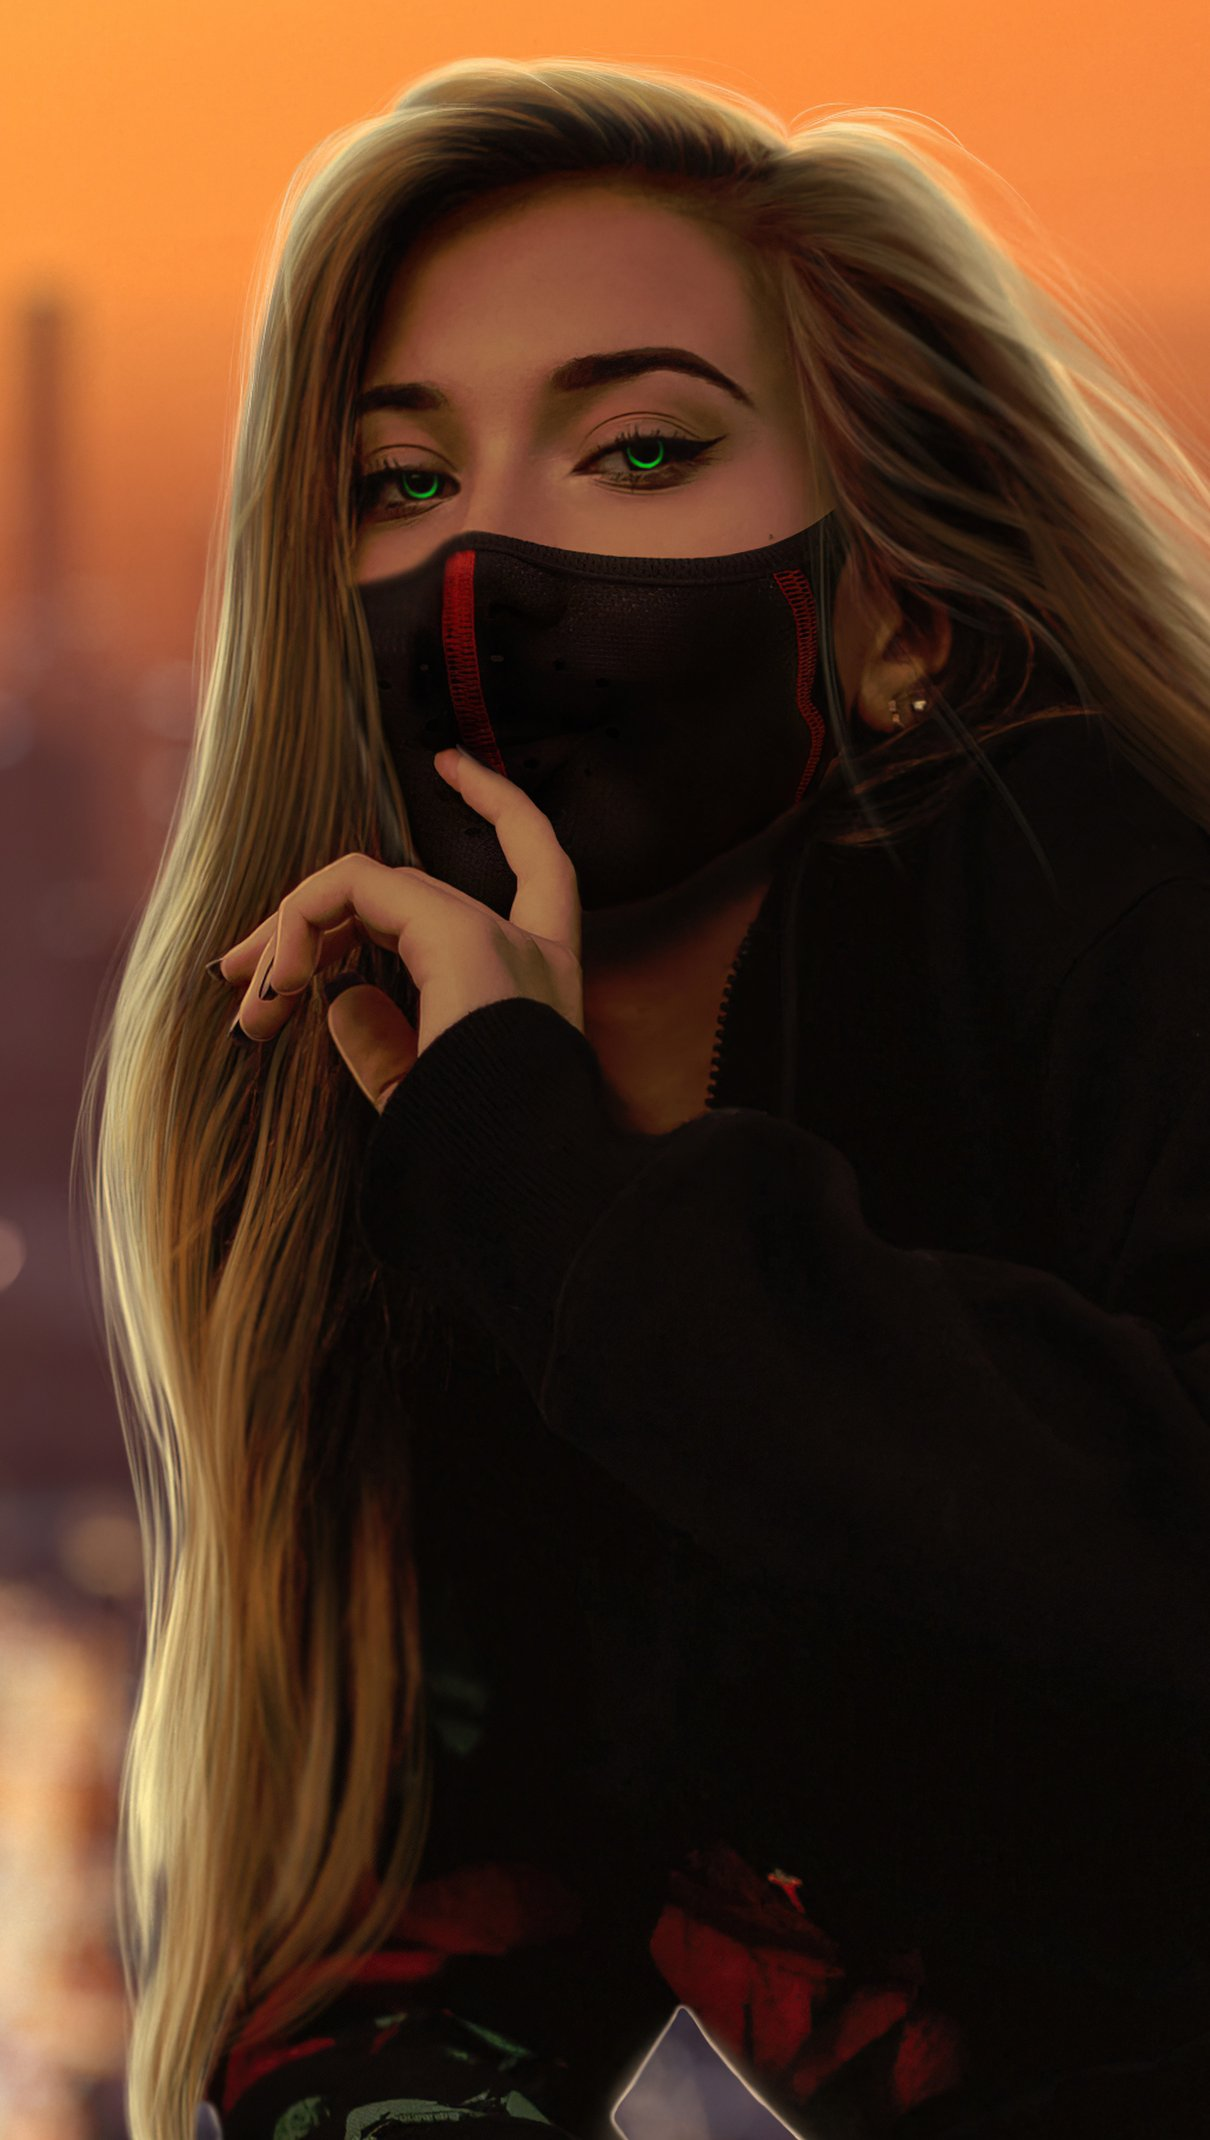 Girl With Mask In A City Wallpaper Id 5489